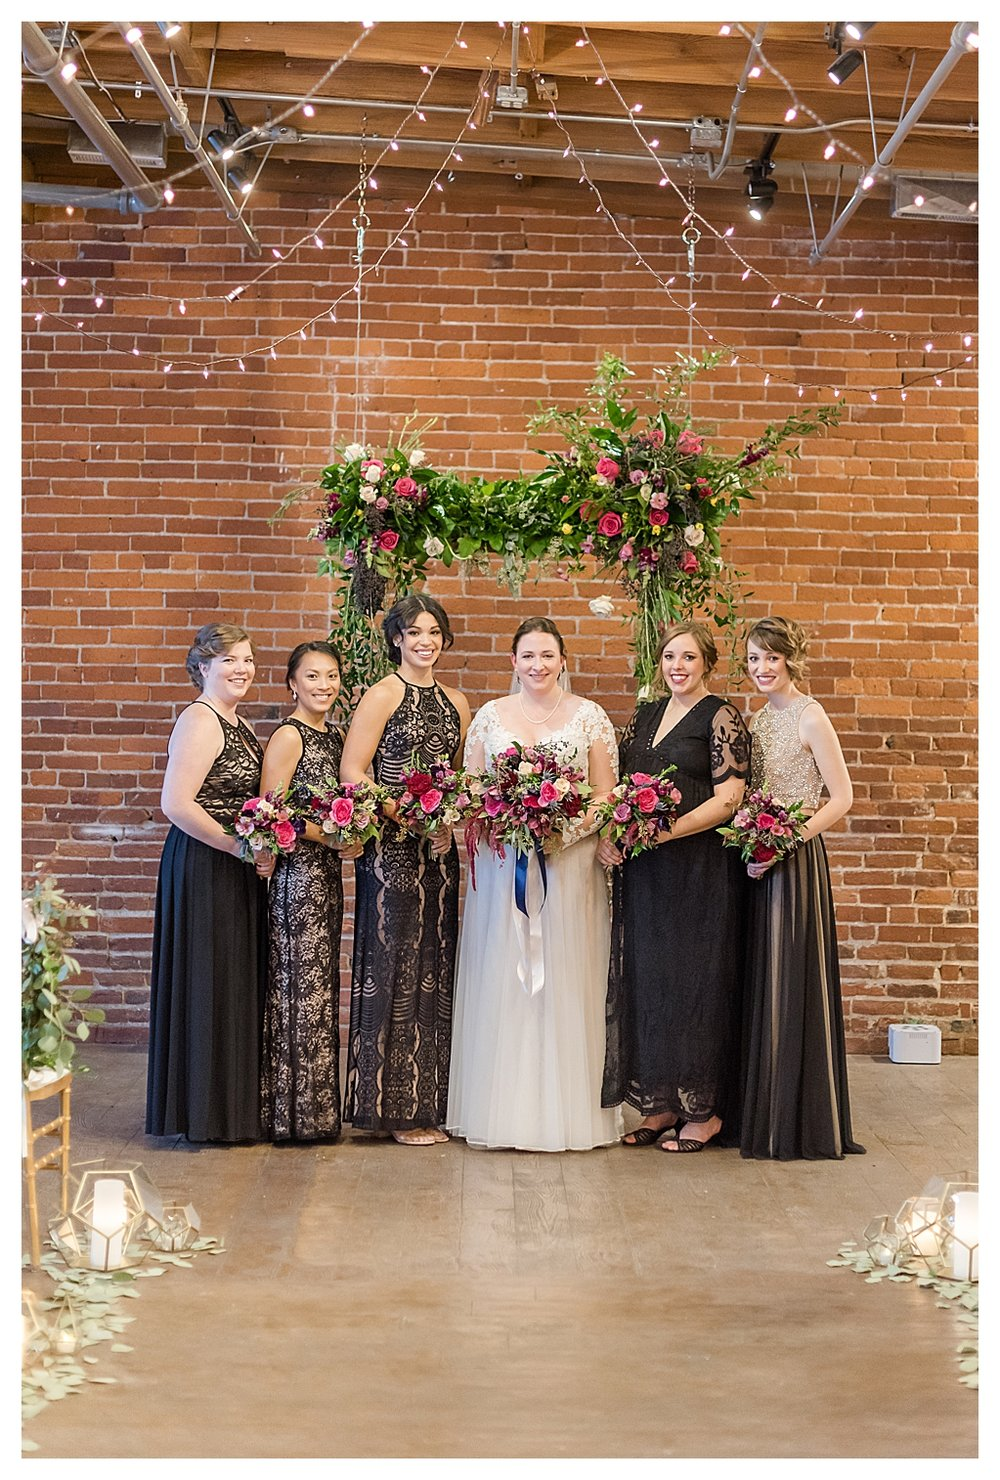 Winter Wedding at The Mill Top Indy Noblesville_1241.jpg